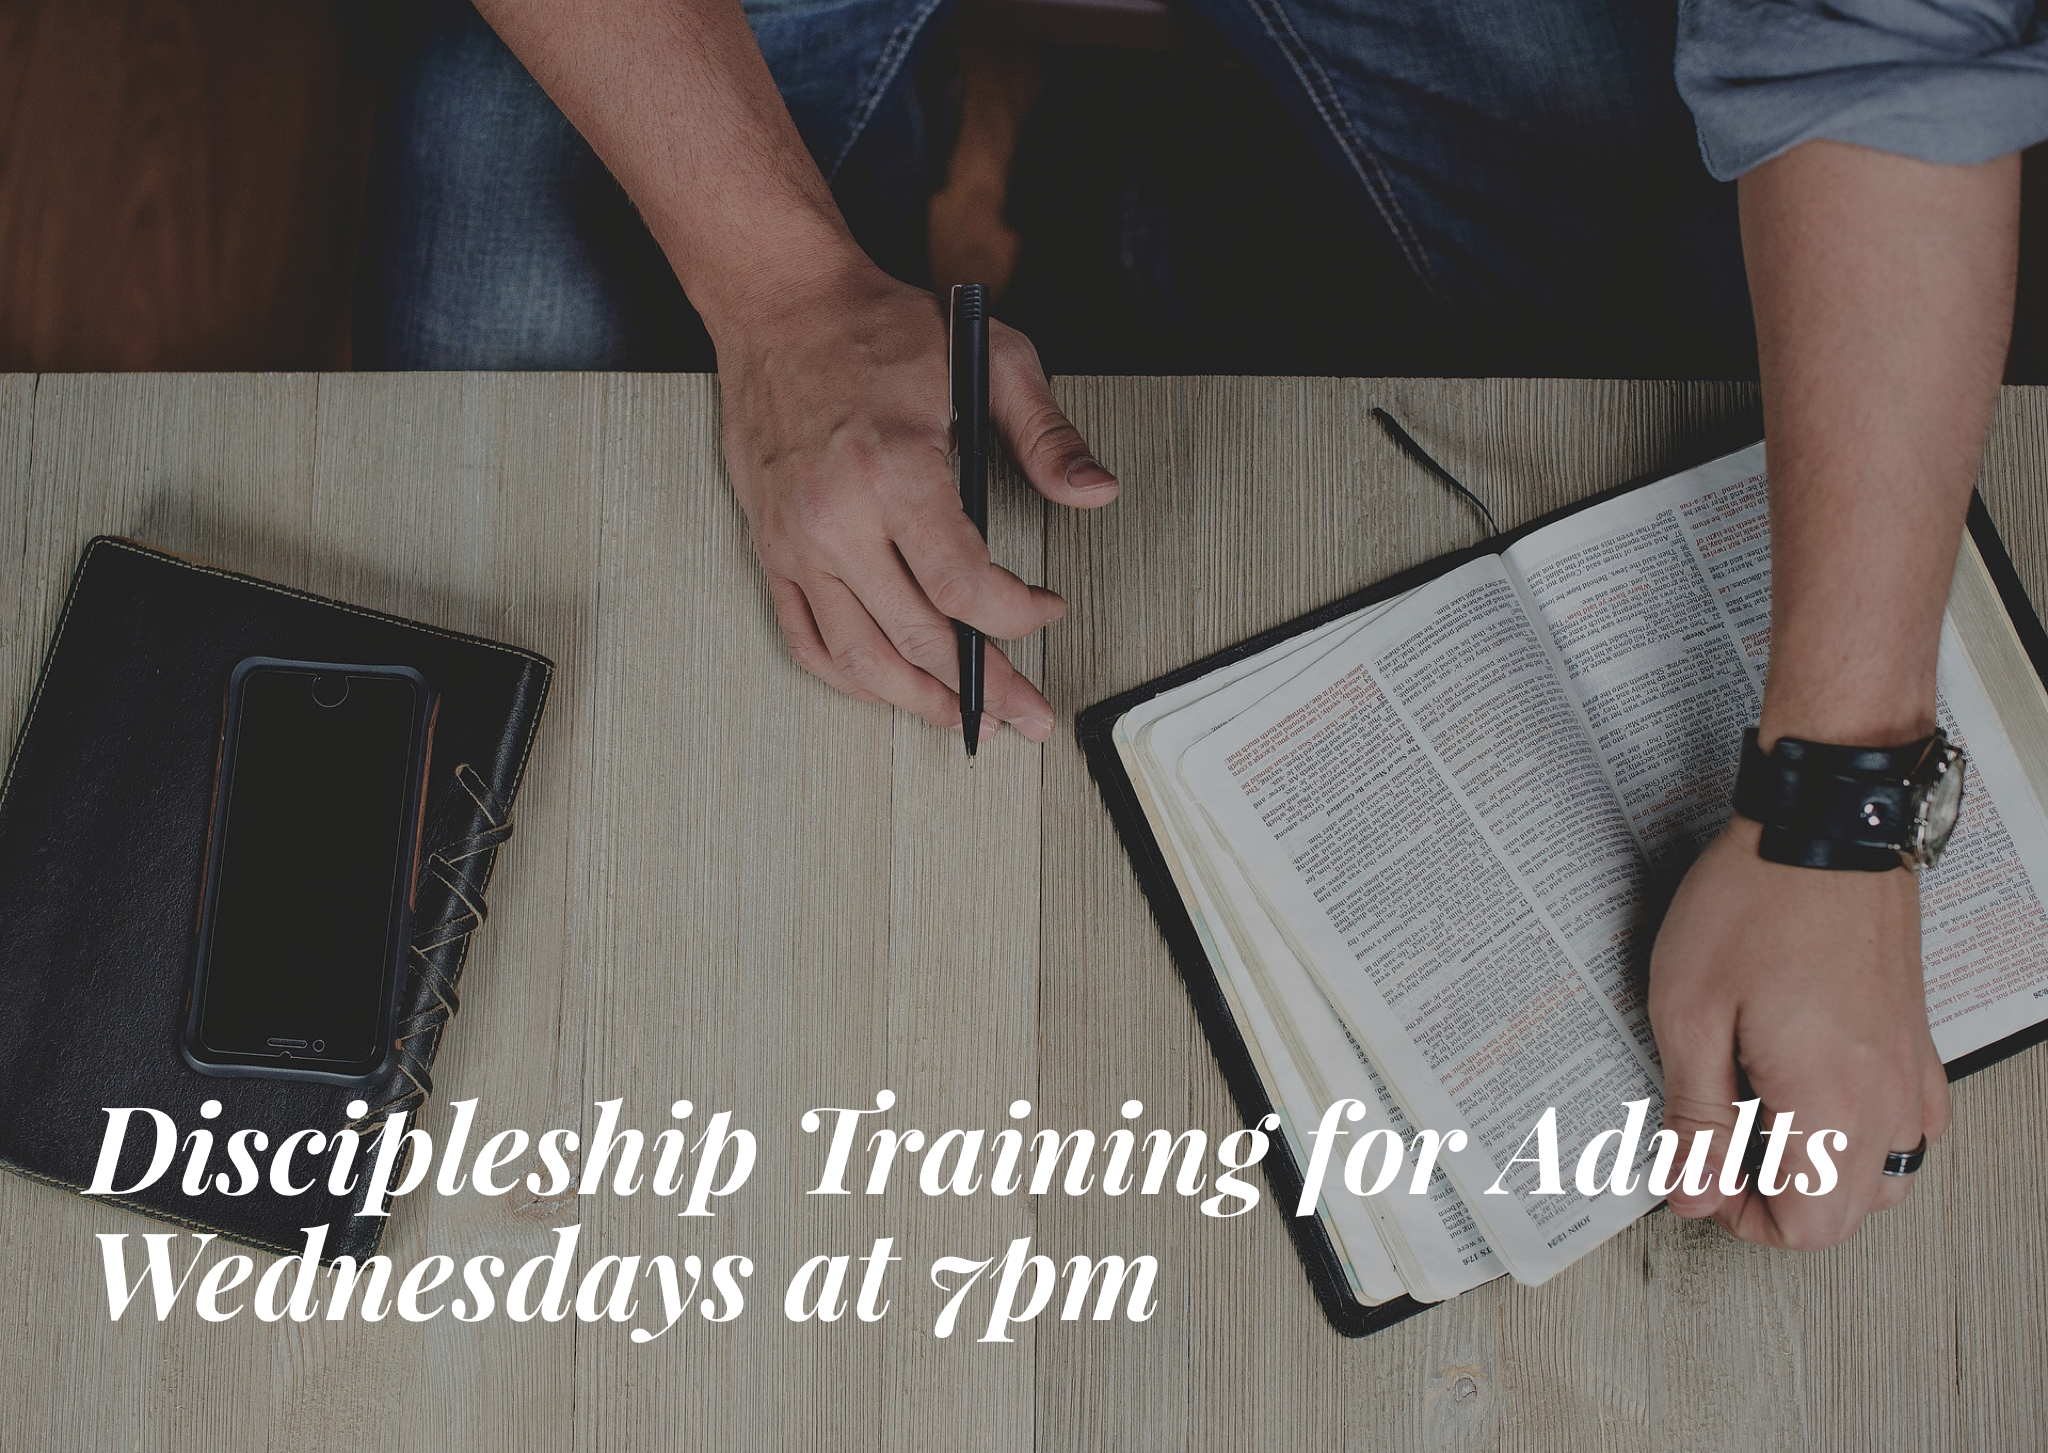 Discipleship Training for Adults